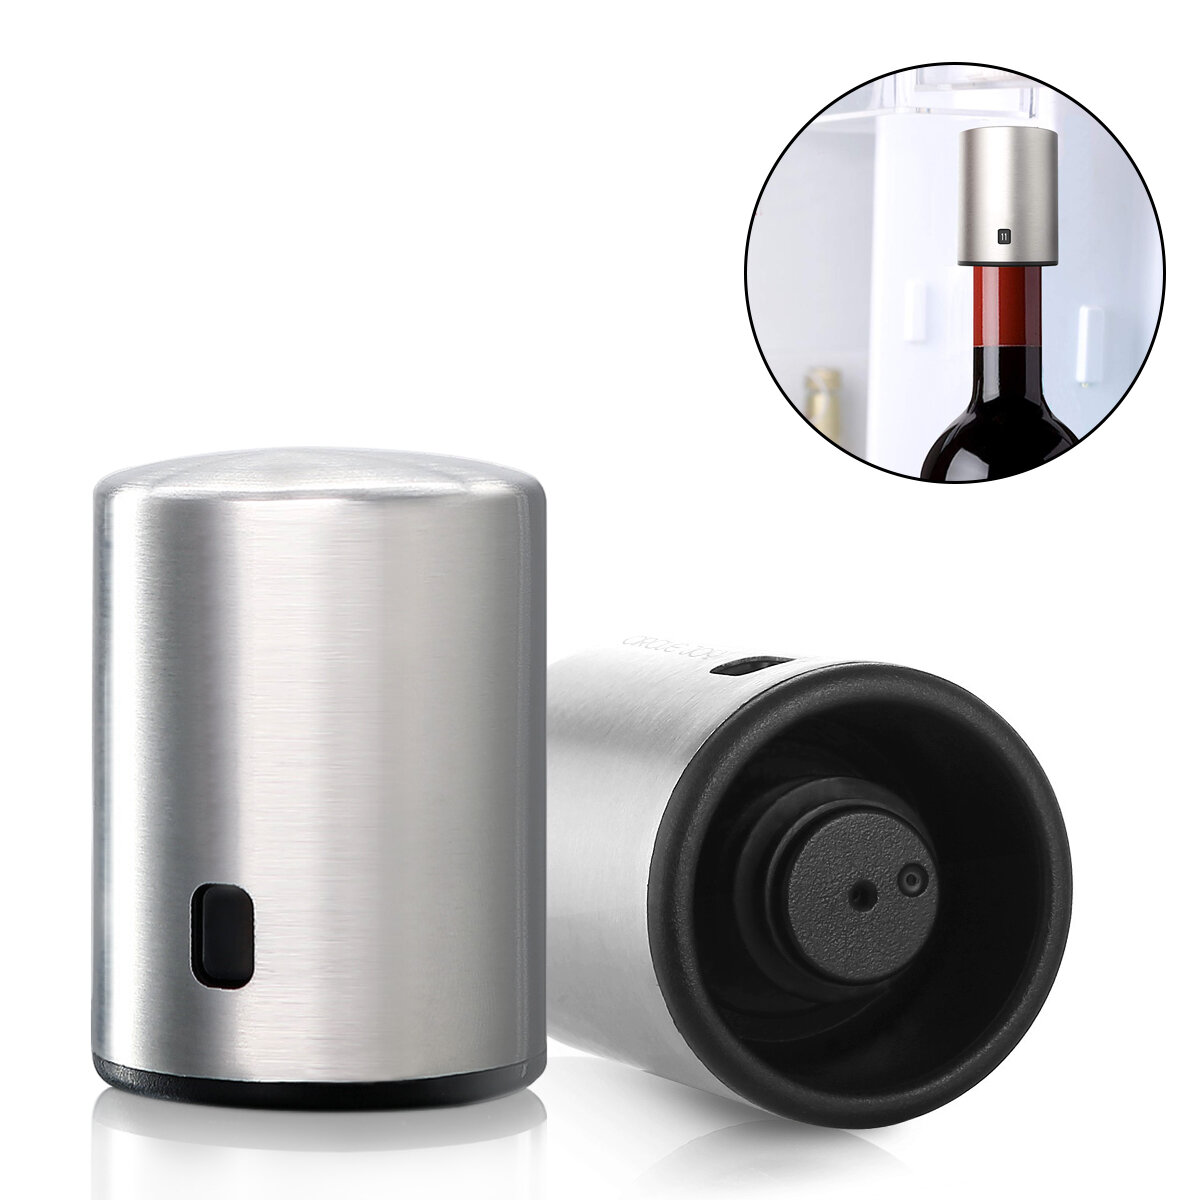 Circle Joy Smart Bottle Stopper Stainless Steel Vacuum Memory Bottle Stopper Stopper Drinking Corks from XIAOMI Youpin фото